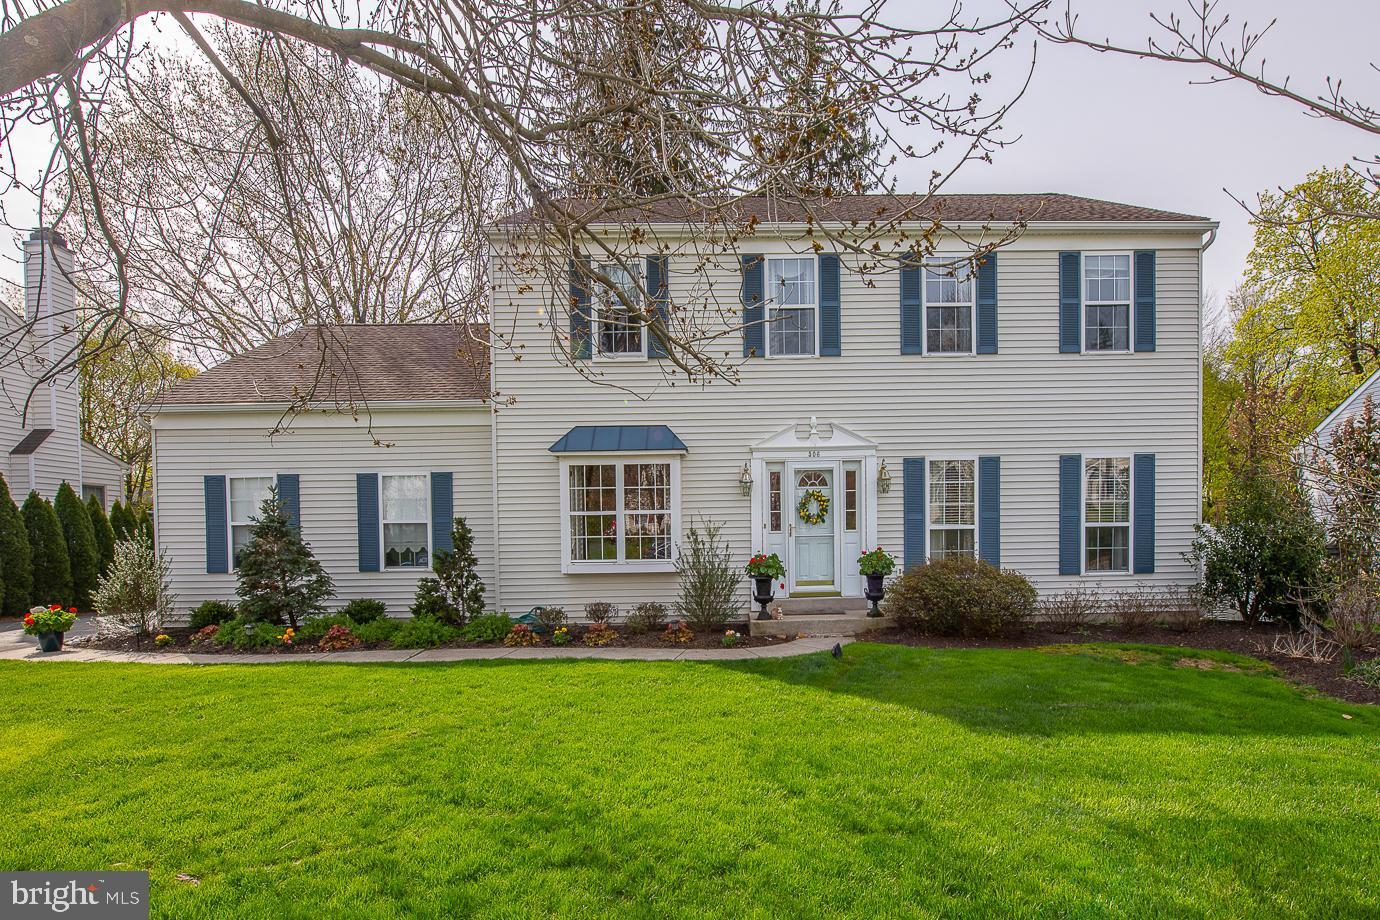 You won't want to miss this exceedingly charming & updated home on a lovely cul-de-sac within minutes to 'walk-around' West Chester & its plethora of great restaurants, Rts 202 S to Wilmington (25 mins), & N to K of P (15 mins), Longwood Gardens, Brandywine Museum,  Andrew Wyeth country, Historic Brandywine Battlefield and sooo much MORE TO DO (even during a pandemic)!  Under the stewardship of the owner in 2004, 506 Hansen Drive has been transformed from an ordinary 'property' into an exceptional home!  The wall between the kitchen & FR was removed…ceiling beams & floor to ceiling custom made bookcases flanking the fireplace were installed along with a bay window overlooking a wonderful post & rail fenced yard for that special pooch.  A professionally designed mellow Kitchen including a cherry-topped island and built-in floor-to-ceiling hutch resulted in a  unique furniture-quality living space and a beautifully arched window over the Farmhouse sink focusing on the backyard!  Sliders from the Kit/FR transport you to an oversized Trex Deck & a few steps down to a heavenly (wired) post & rail fenced yard with flower garden borders!  Of course, there is a gracious LR & DR with beautiful, white coffered ceilings that greet you as you enter.  Turn on the music, as there are speakers throughout the 1st floor and deck as well as the MBR!! Upstairs, the MBR is amazingly enhanced with 2 LARGE w/in closets, a vaulted ceiling and a large, updated MBA!  There are 3 additional Bedrooms and an updated Hall Bath.  The Basement is a wonderful area complete with a full bathroom, Recreation Room, a Bedroom/office, & a mechanical/storage room.   Power outages...not YOUR problem as there is a whole house generator to keep you comfortable at any time of the year!   A home so welcoming the Eastern Bluebirds return every year to raise their family in this backyard!  Truly Heaven for the lucky new owners! Welcome home!